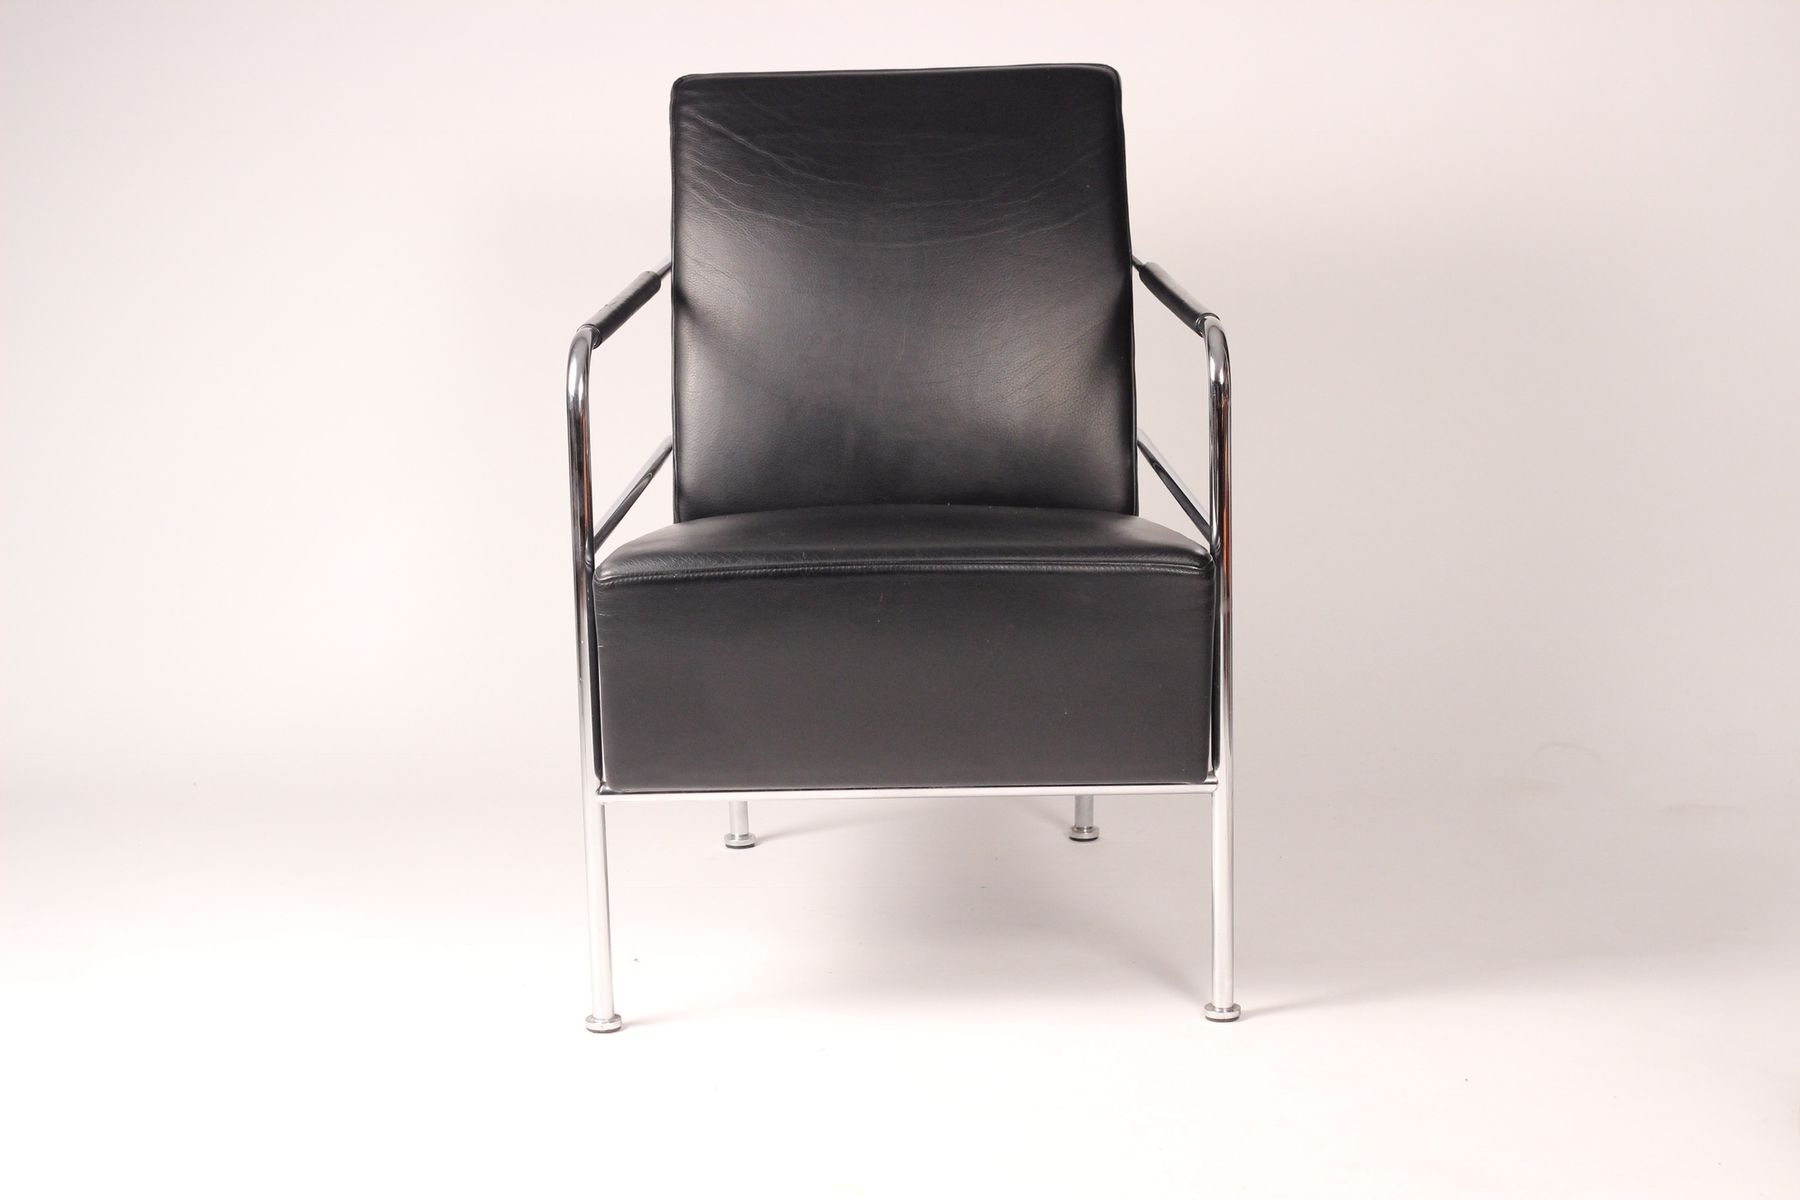 Leather Lounge Chair by Gunilla Allard for Lammhults, 1994 for sale at Pamono